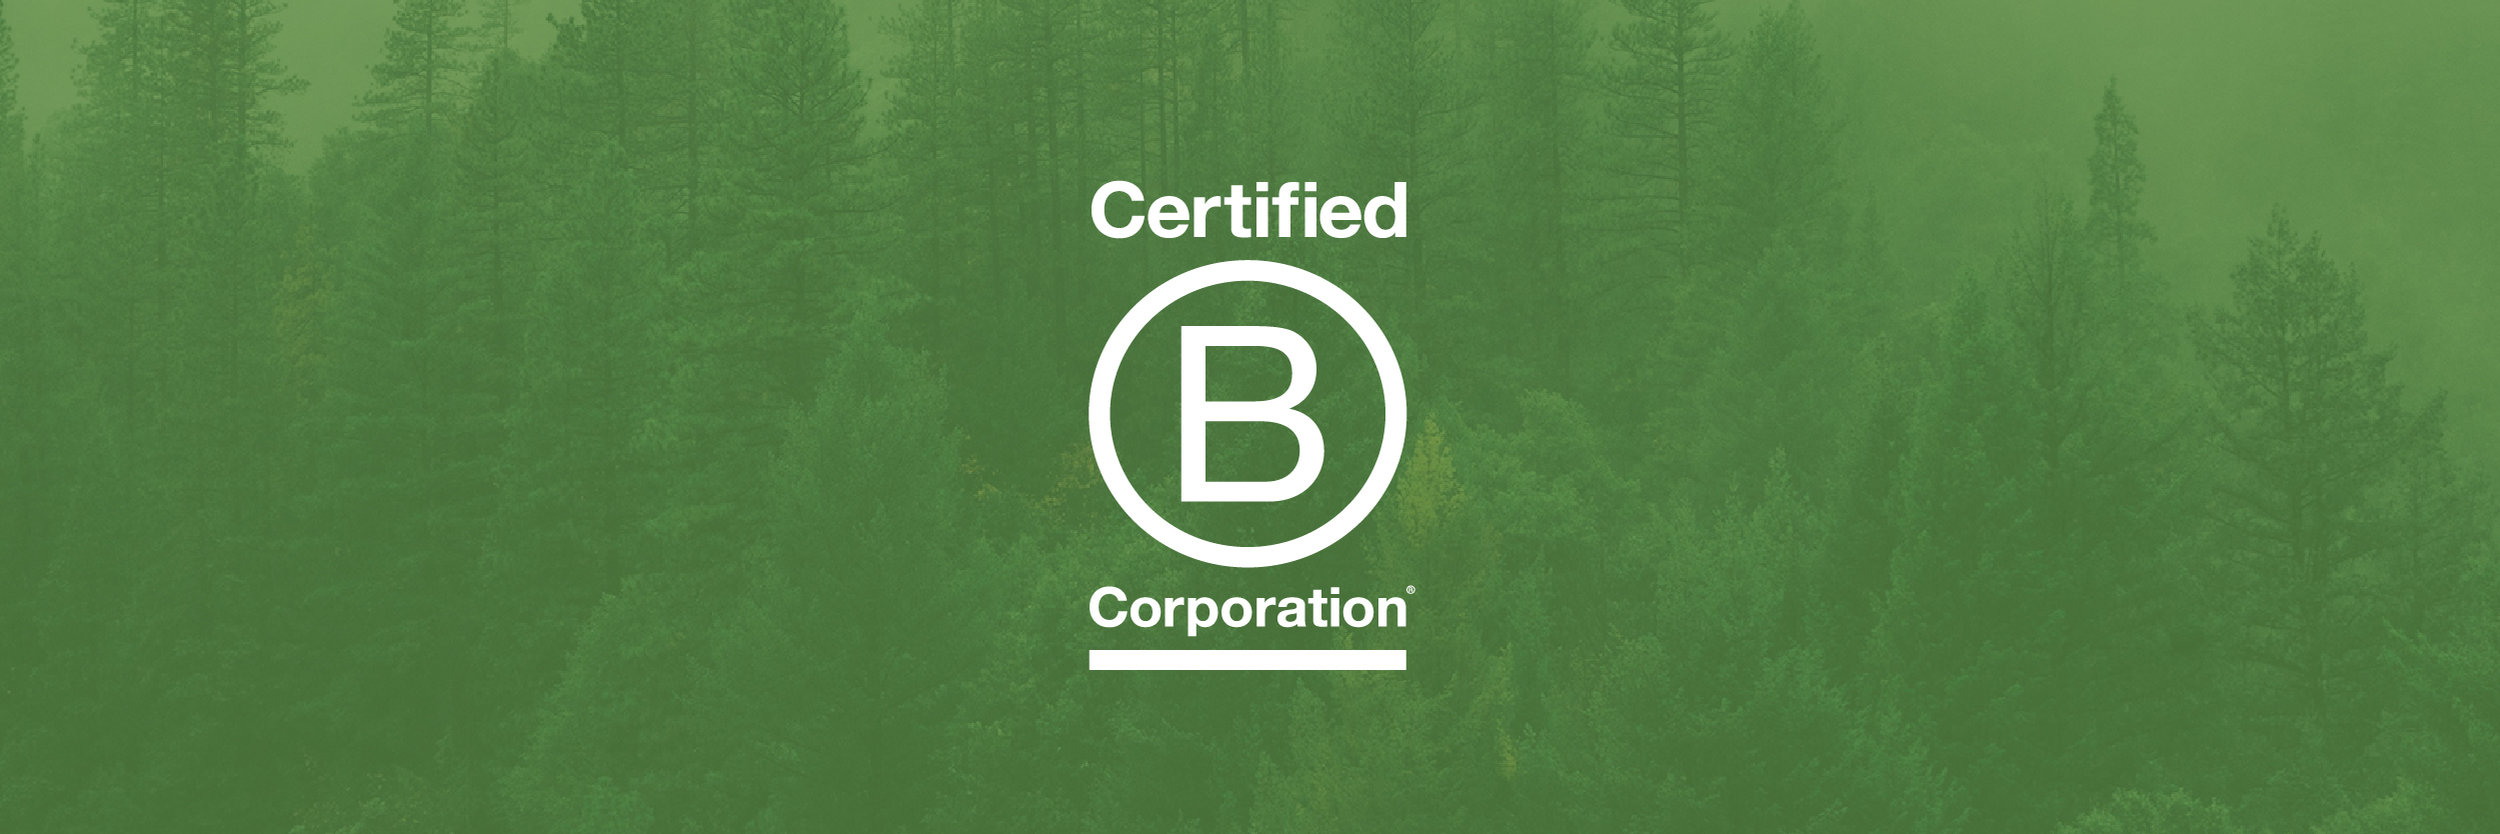 Celebrating Our Own B Corp Certification Heather Paulsen Consulting